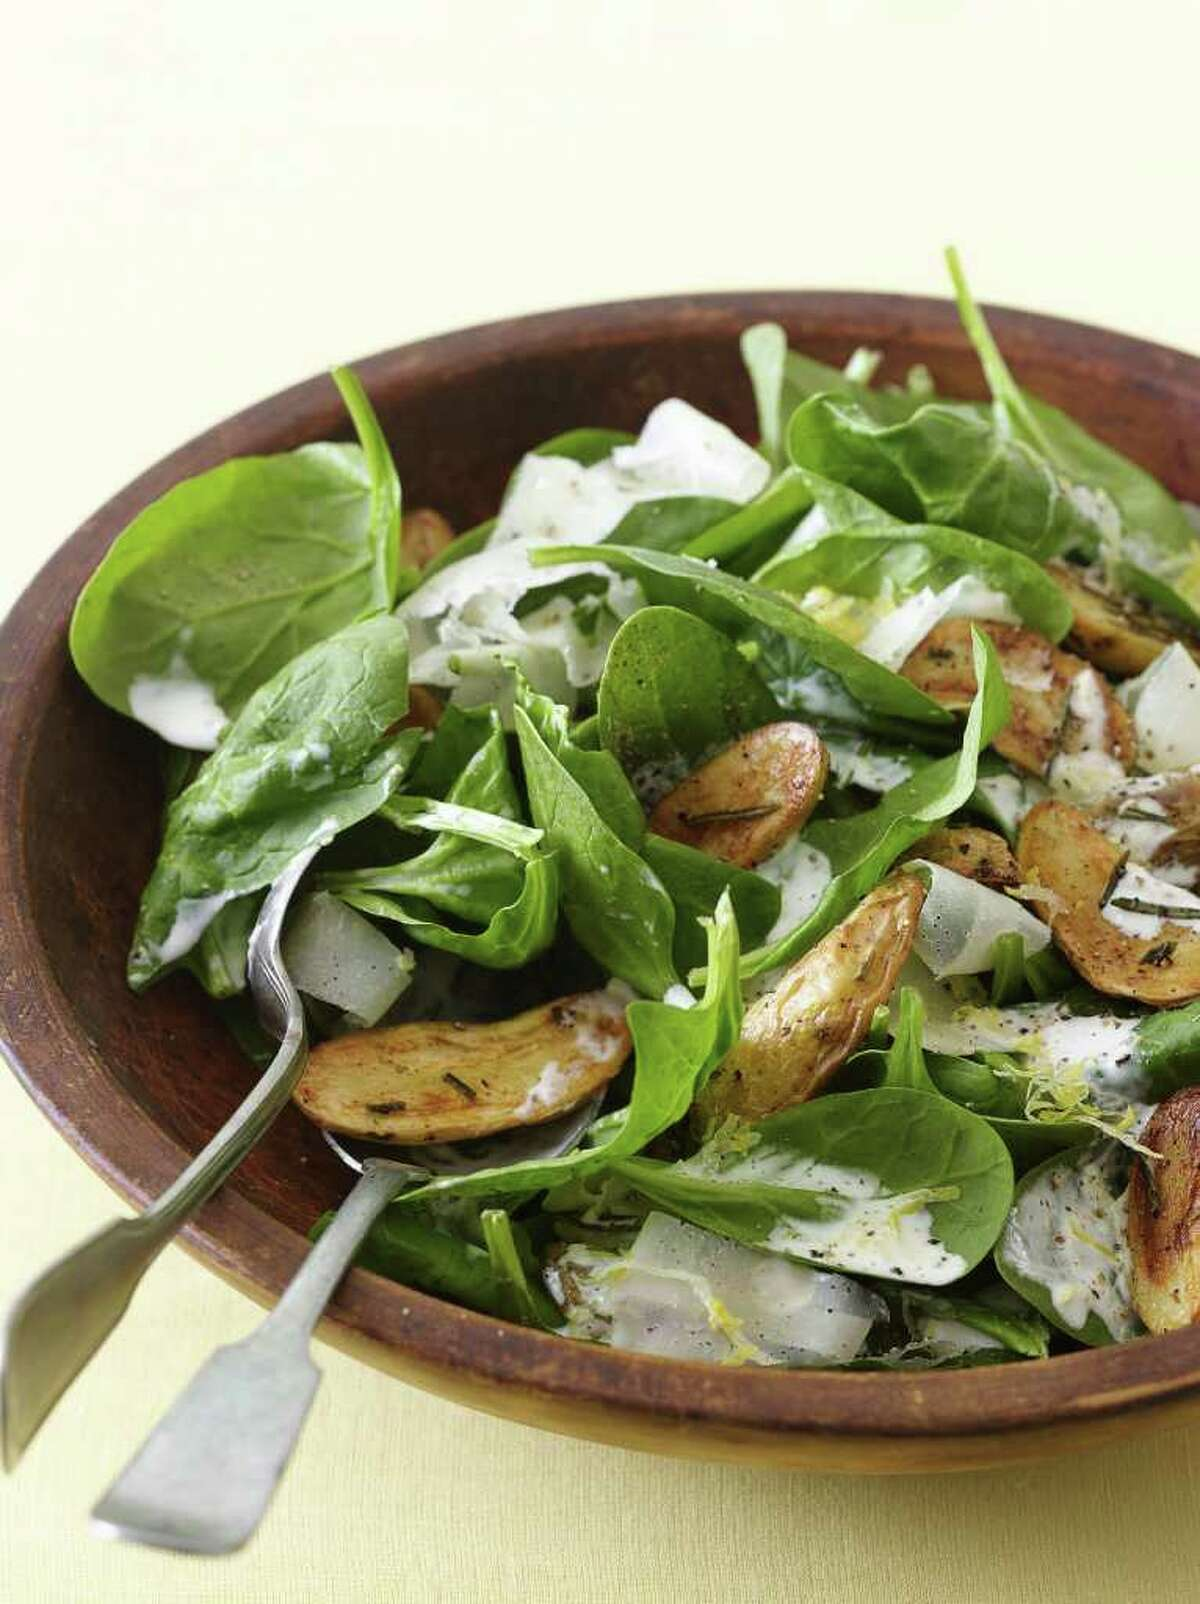 Delish: Redbook recipe for Roasted Potato, Spinach, and Parmesan Salad.